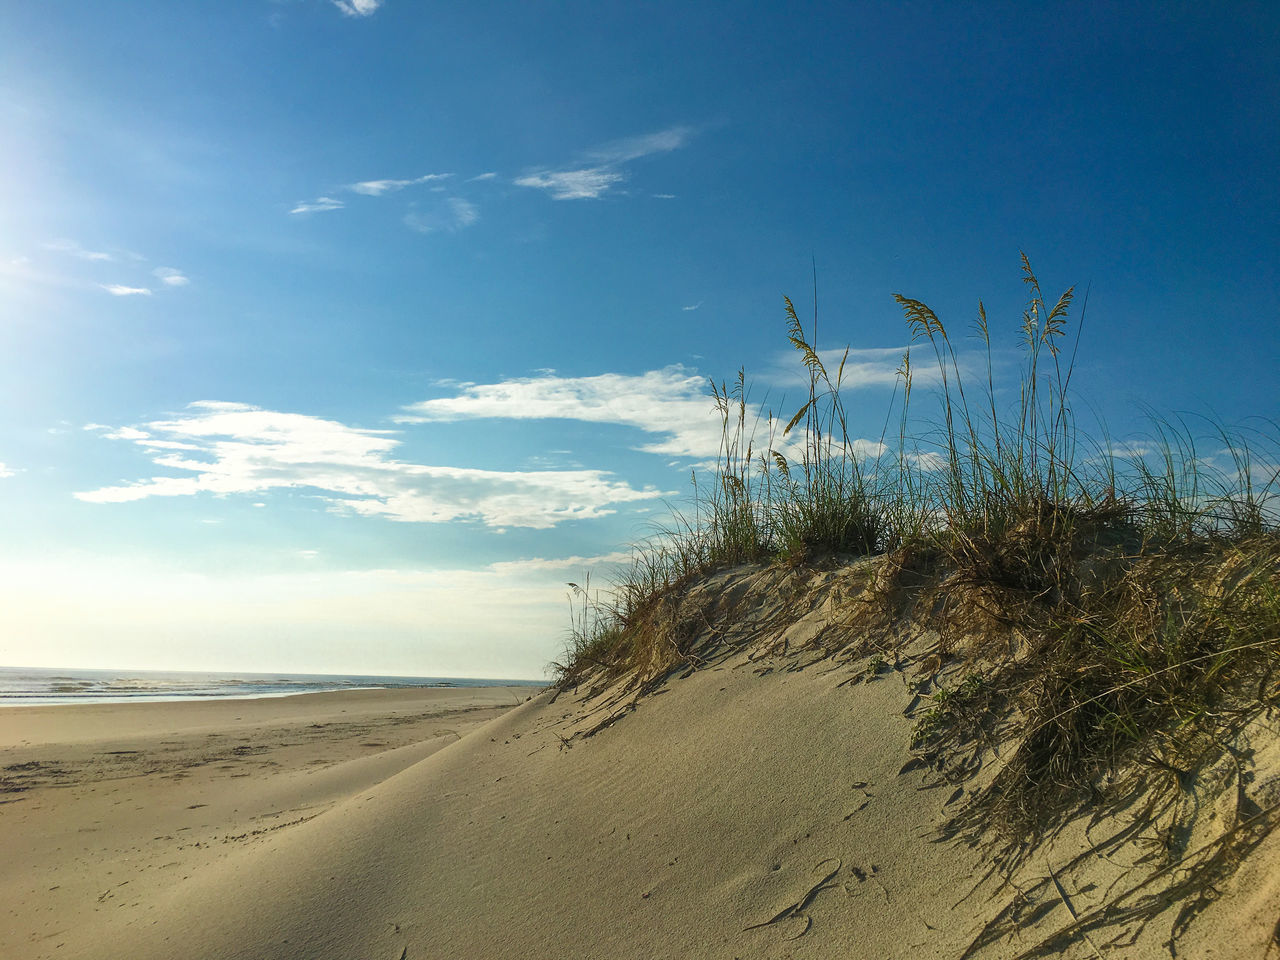 Sand dune with blue sky Beach Beauty In Nature Blue Cloud - Sky Day Growth Horizon Over Water Marram Grass Nature No People Outdoors Sand Sand Dune Scenics Sea Sky Tranquil Scene Tranquility Water